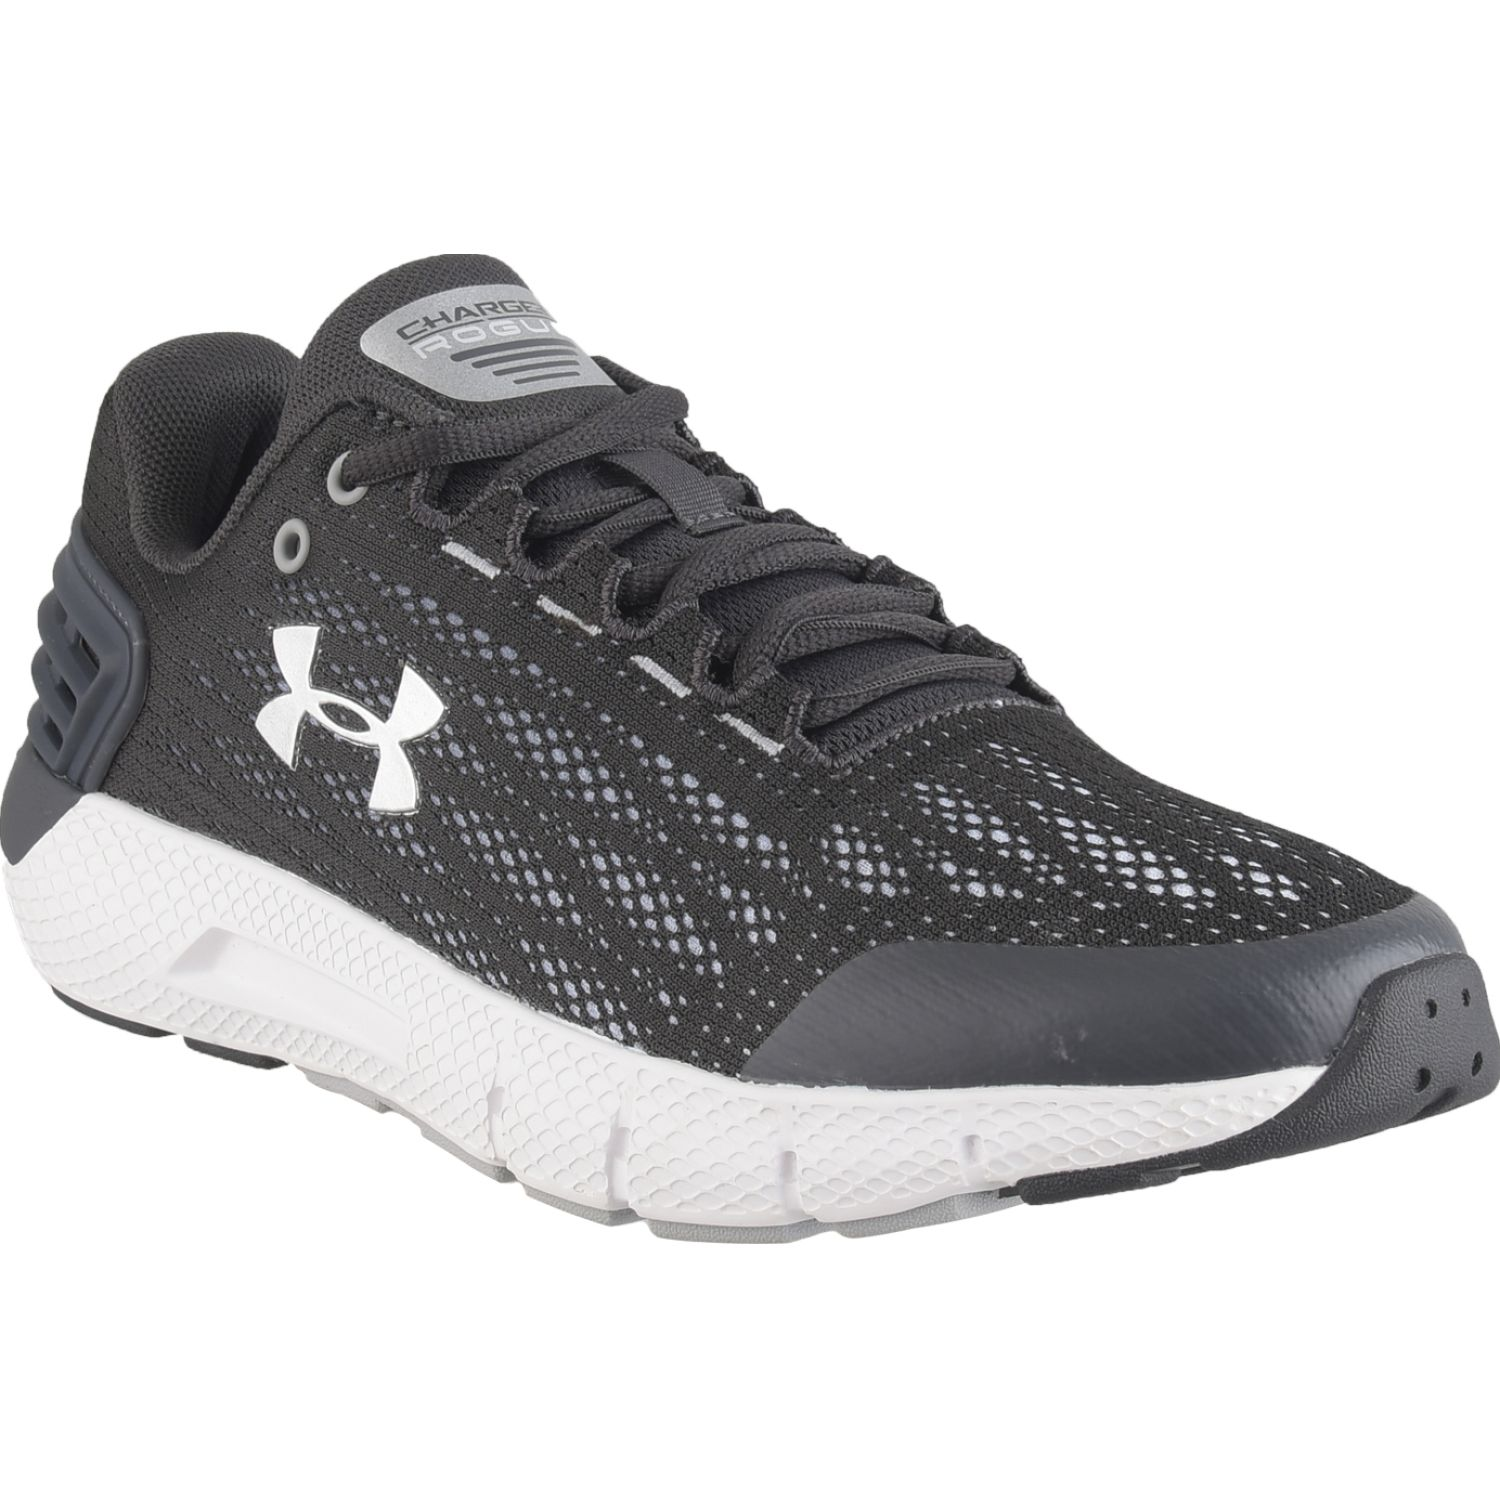 Under Armour Ua Bgs Charged Rogue Negro / blanco Niños